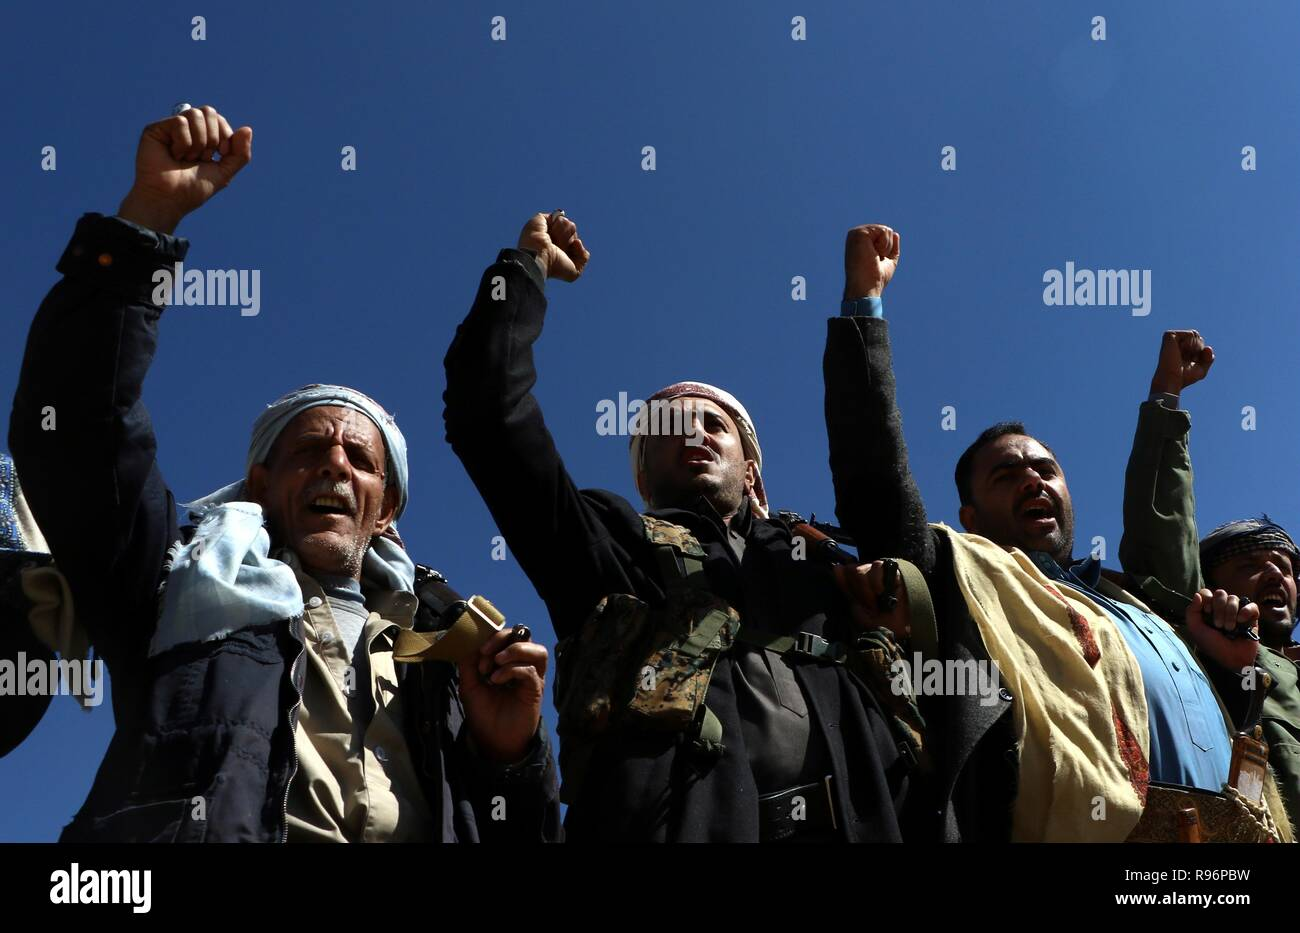 Beijing, Yemen. 19th Dec, 2018. Yemen's Houthi followers shout slogans during a rally to celebrate and support the UN-brokered cease-fire in Hodeidah, in Sanaa, Yemen, on Dec. 19, 2018. The cease-fire agreement reached between the Yemeni government and Houthi rebels during the UN-sponsored peace talks in Sweden went into effect on Dec. 17. Credit: Mohammed Mohammed/Xinhua/Alamy Live News - Stock Image